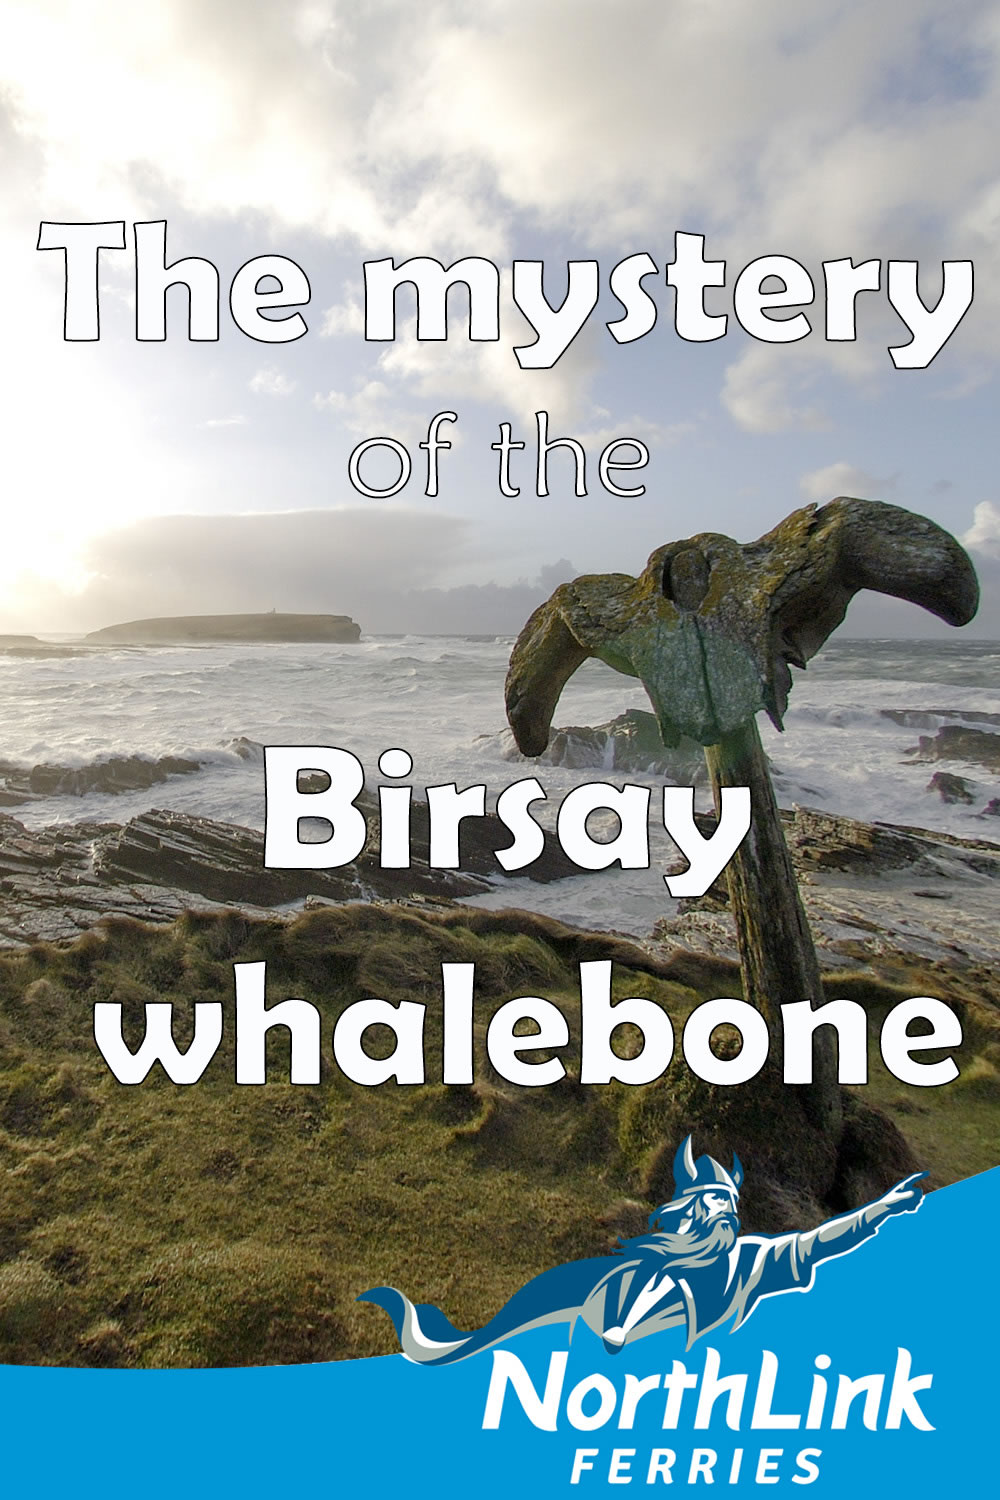 The mystery of the Birsay whalebone